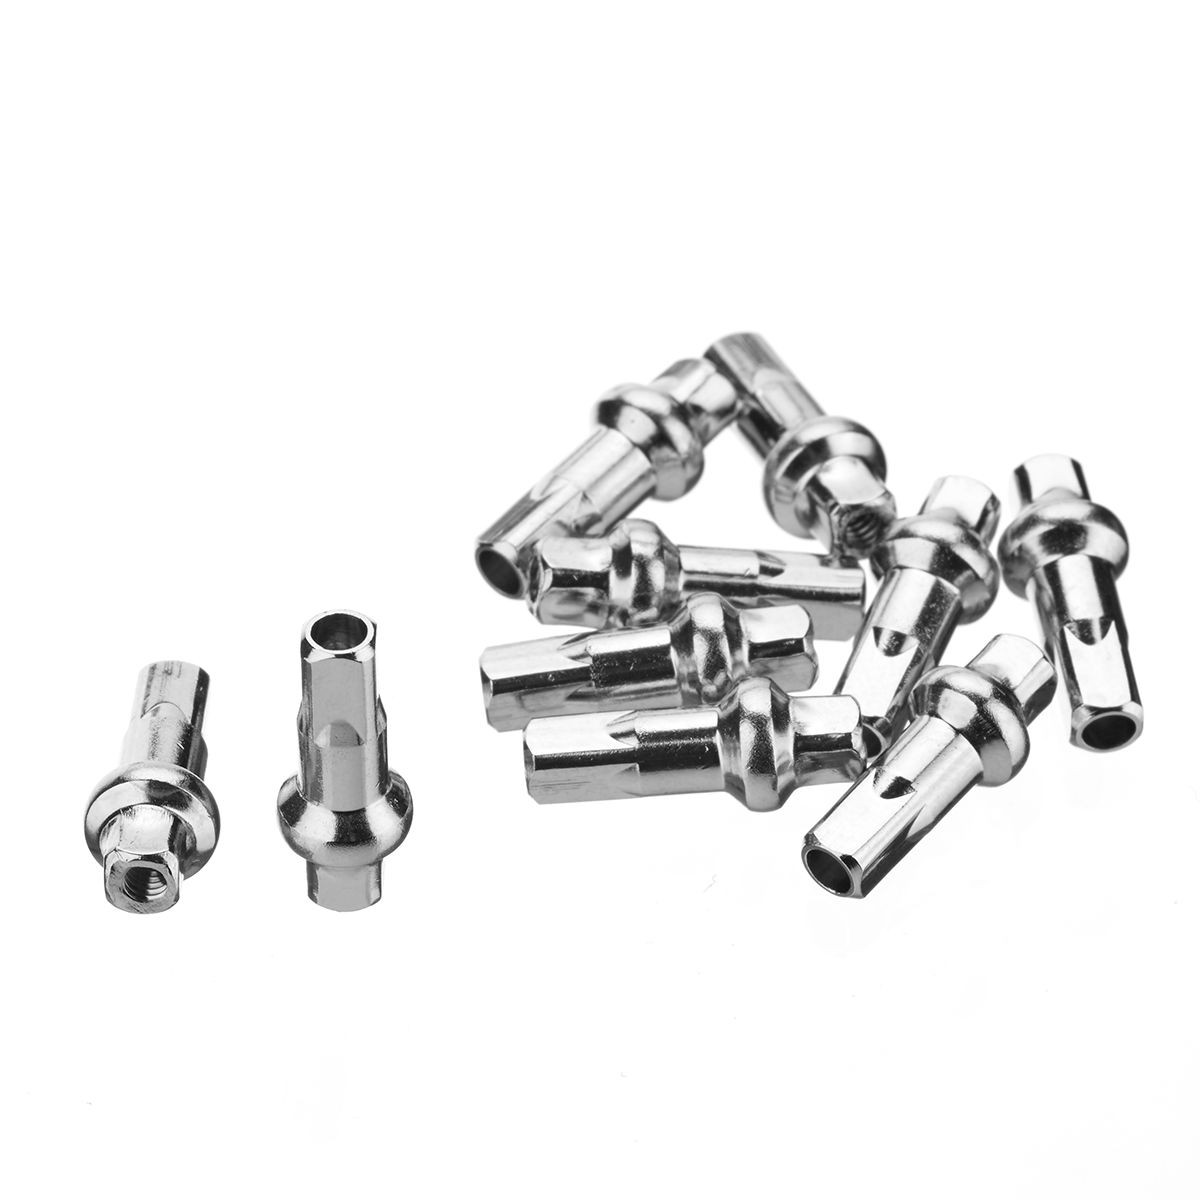 DT Swiss Rayons mamelons 2.0 Laiton Argent 12 mm 100 pièces